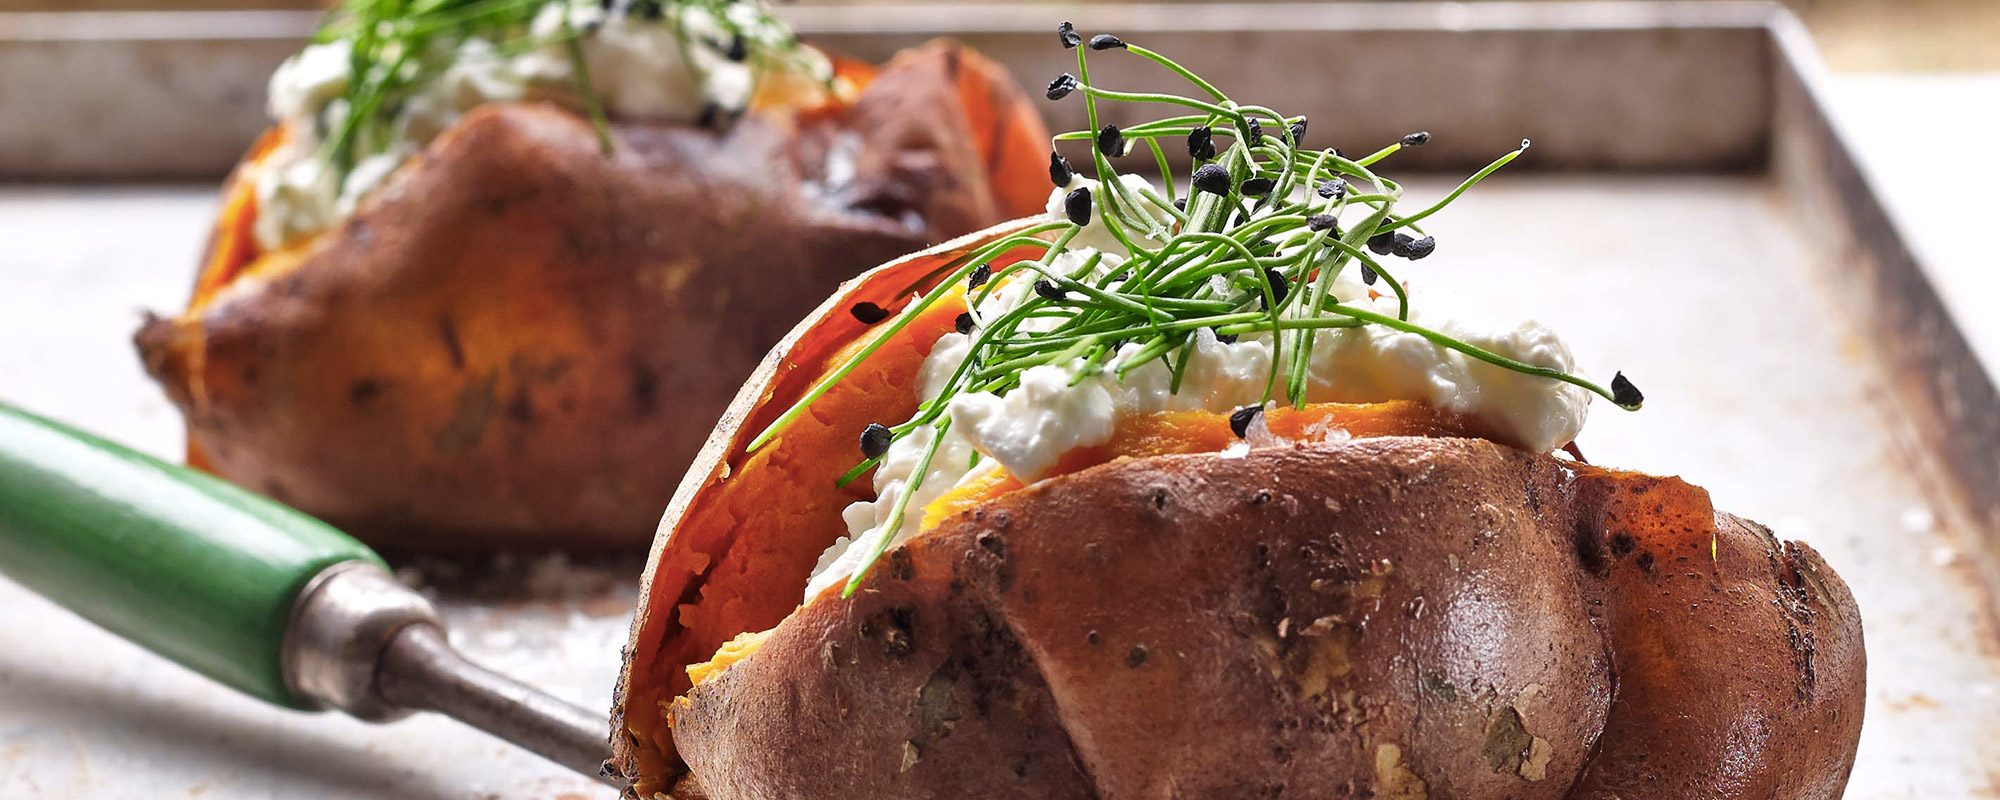 Marvelous Recipe Sweet Jacket Potato With Cottage Cheese And Garlic Interior Design Ideas Gentotryabchikinfo